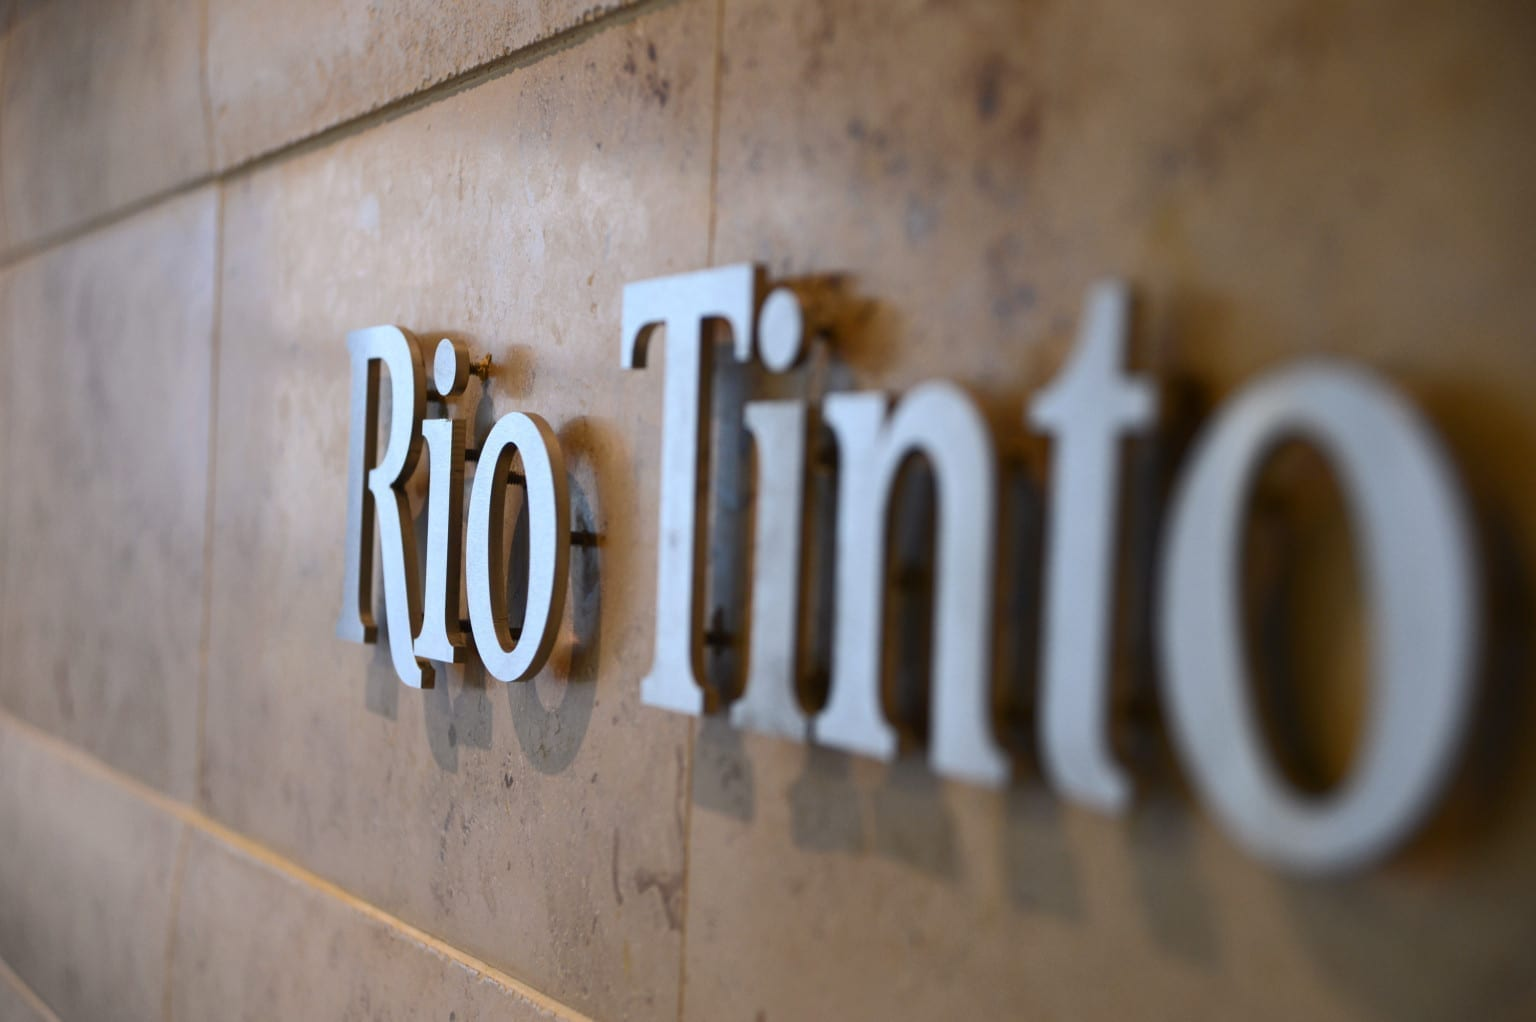 Rio Tinto delivers superior shareholder returns